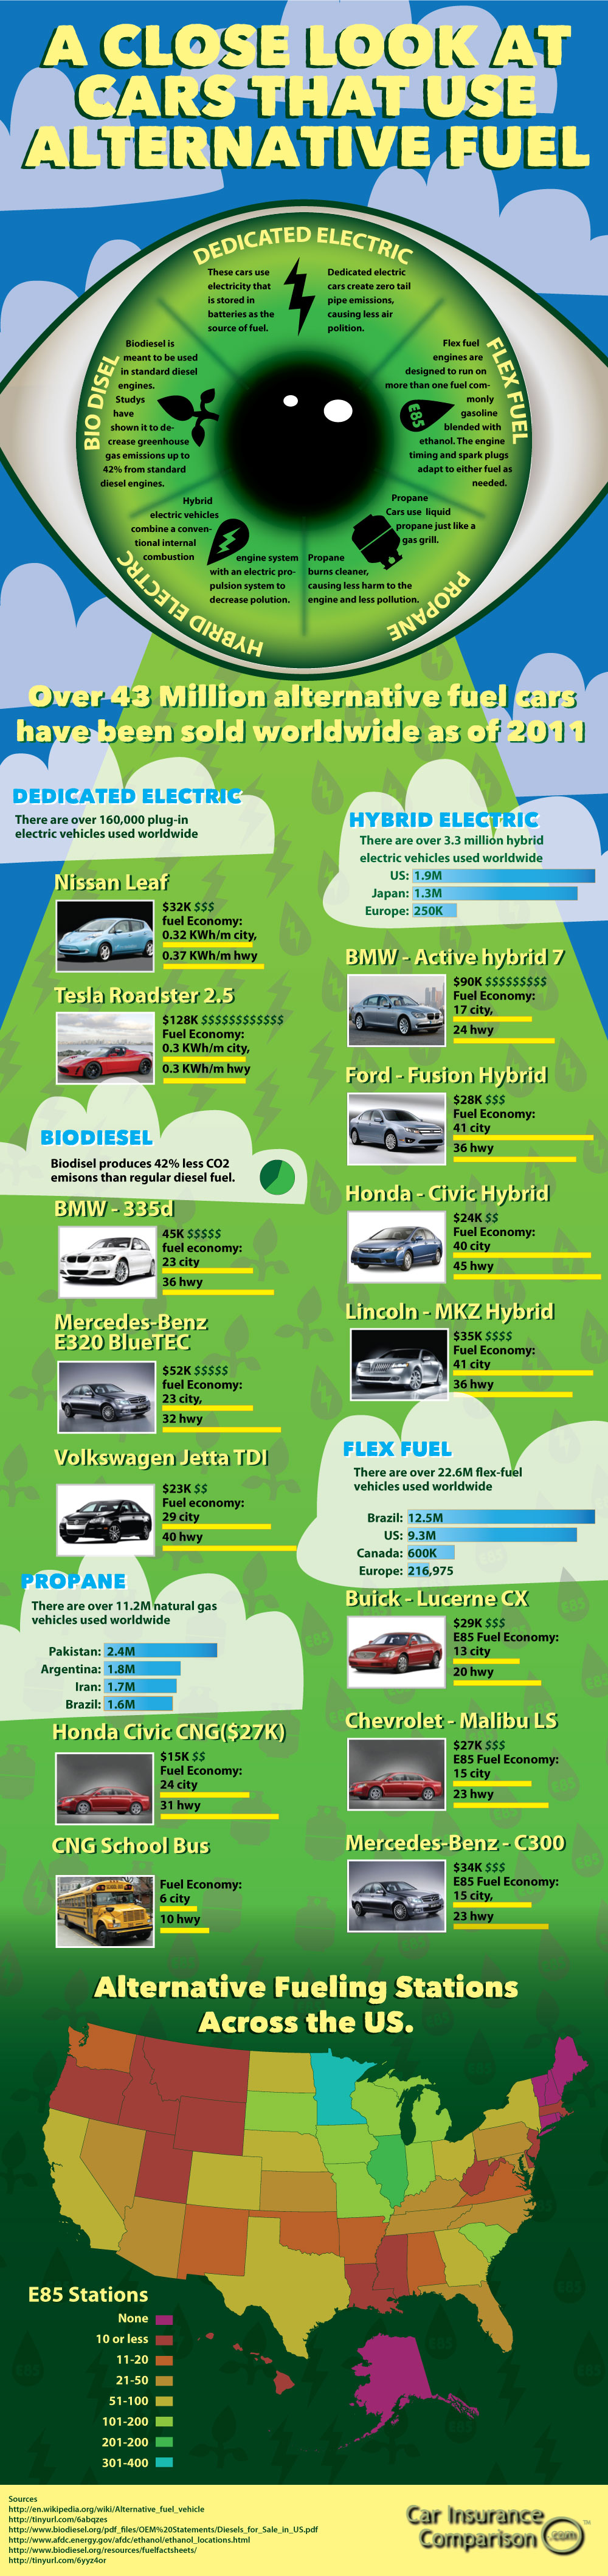 Alternative Fuel Cars